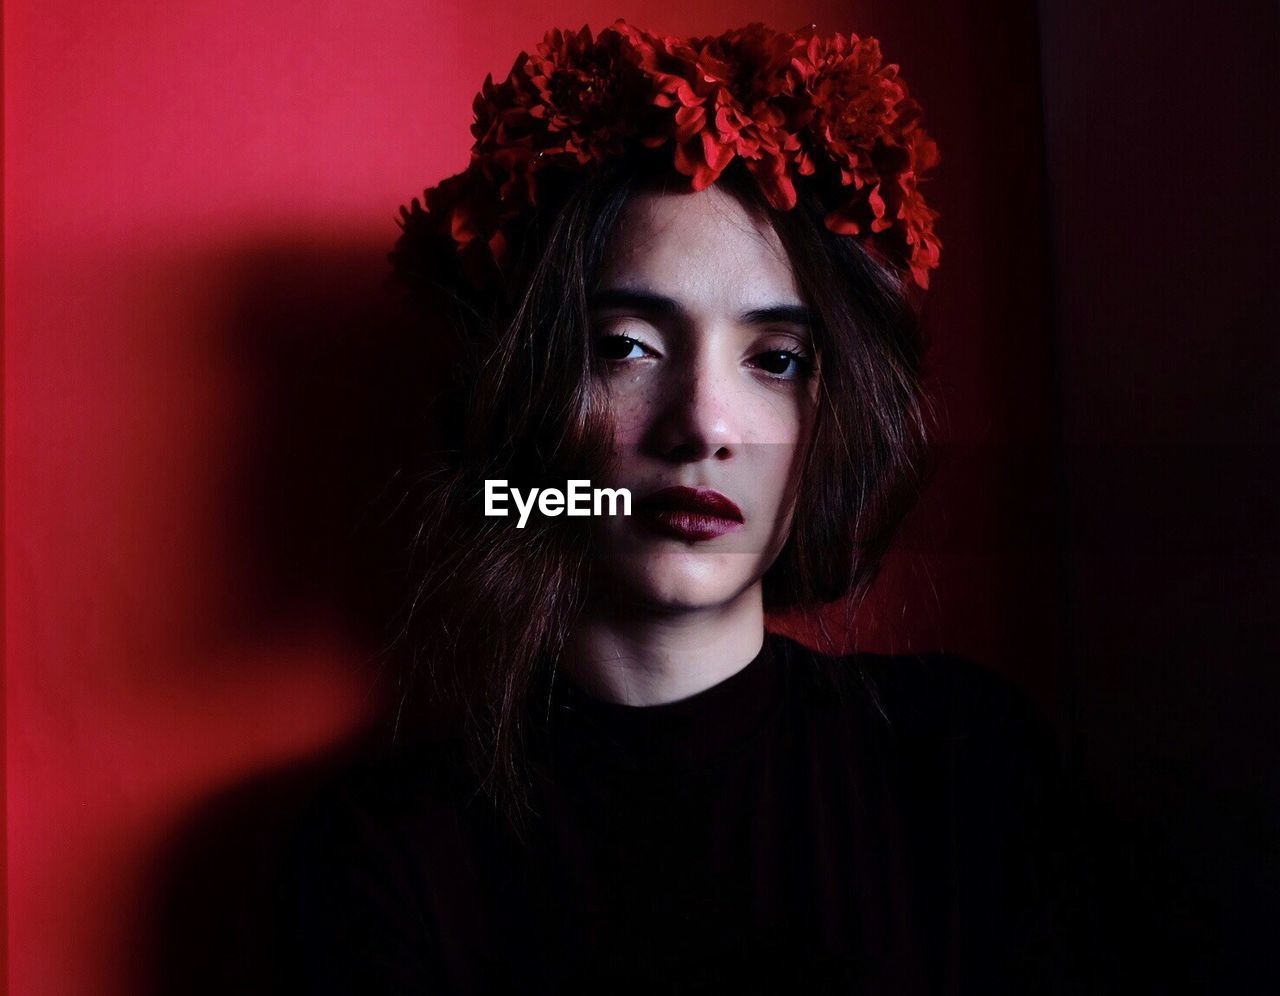 red, portrait, beautiful woman, beauty, looking at camera, young adult, spooky, headshot, one person, flower, one young woman only, make-up, beautiful people, young women, adult, one woman only, halloween, close-up, human body part, night, people, adults only